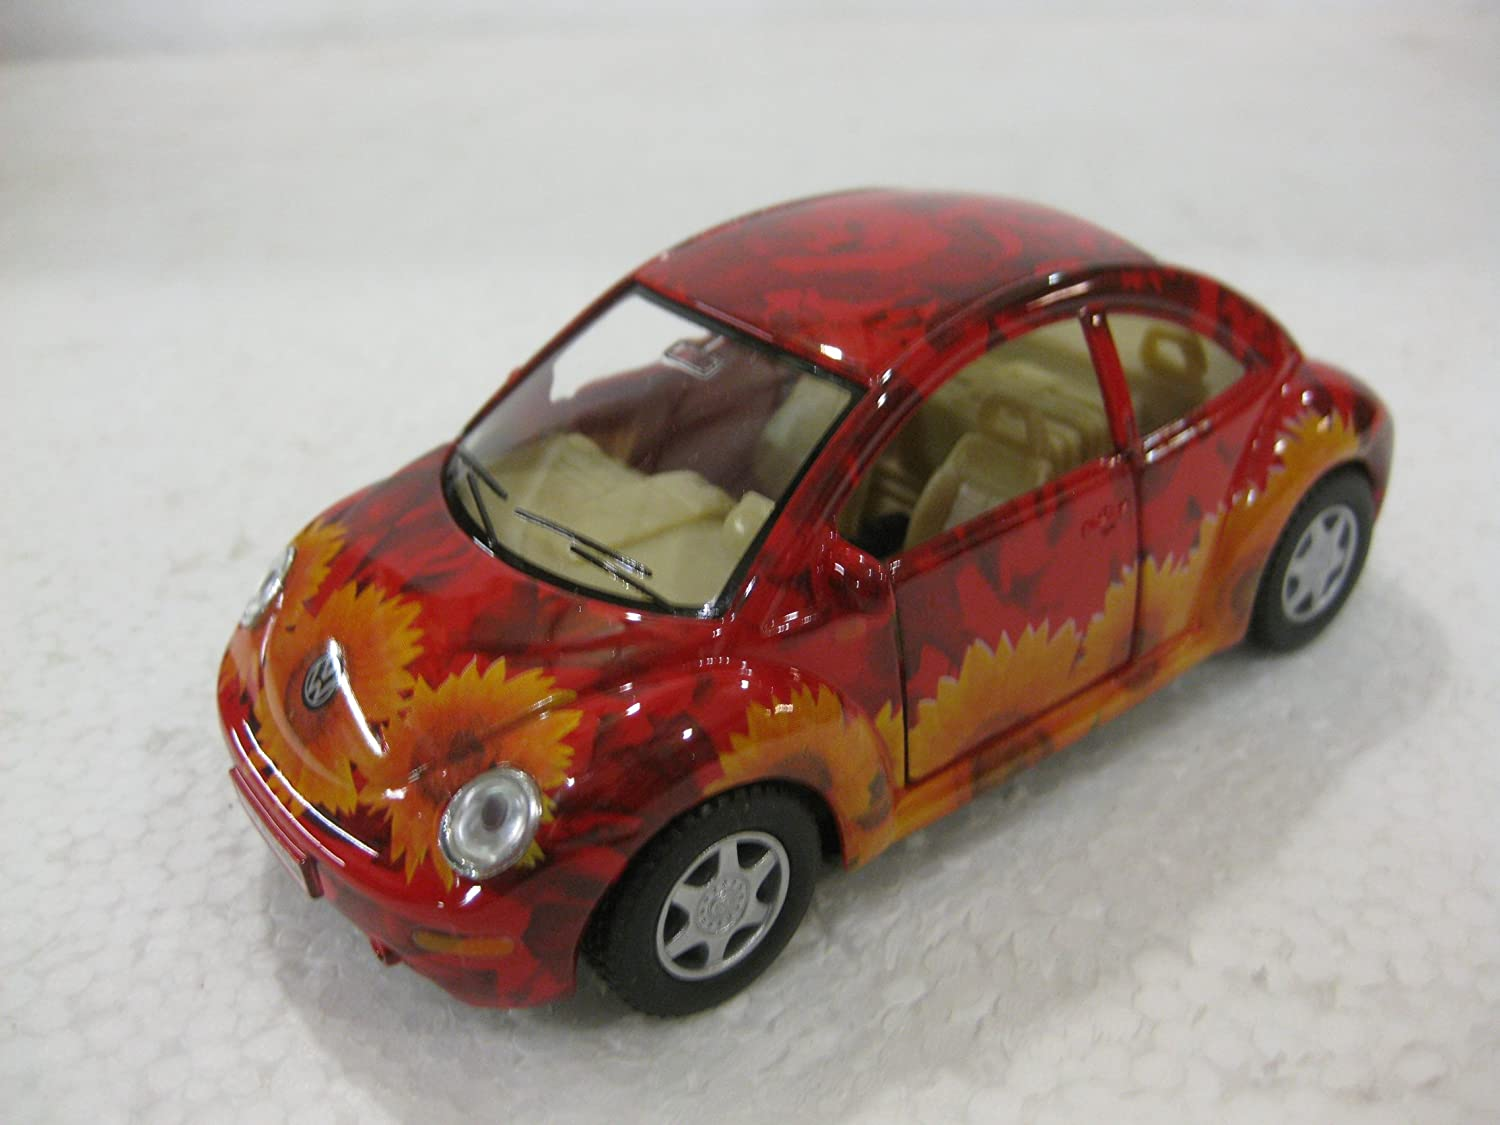 diecast 1 32 scale Volkswagon New Beetle in Flower Print by Kinsmart